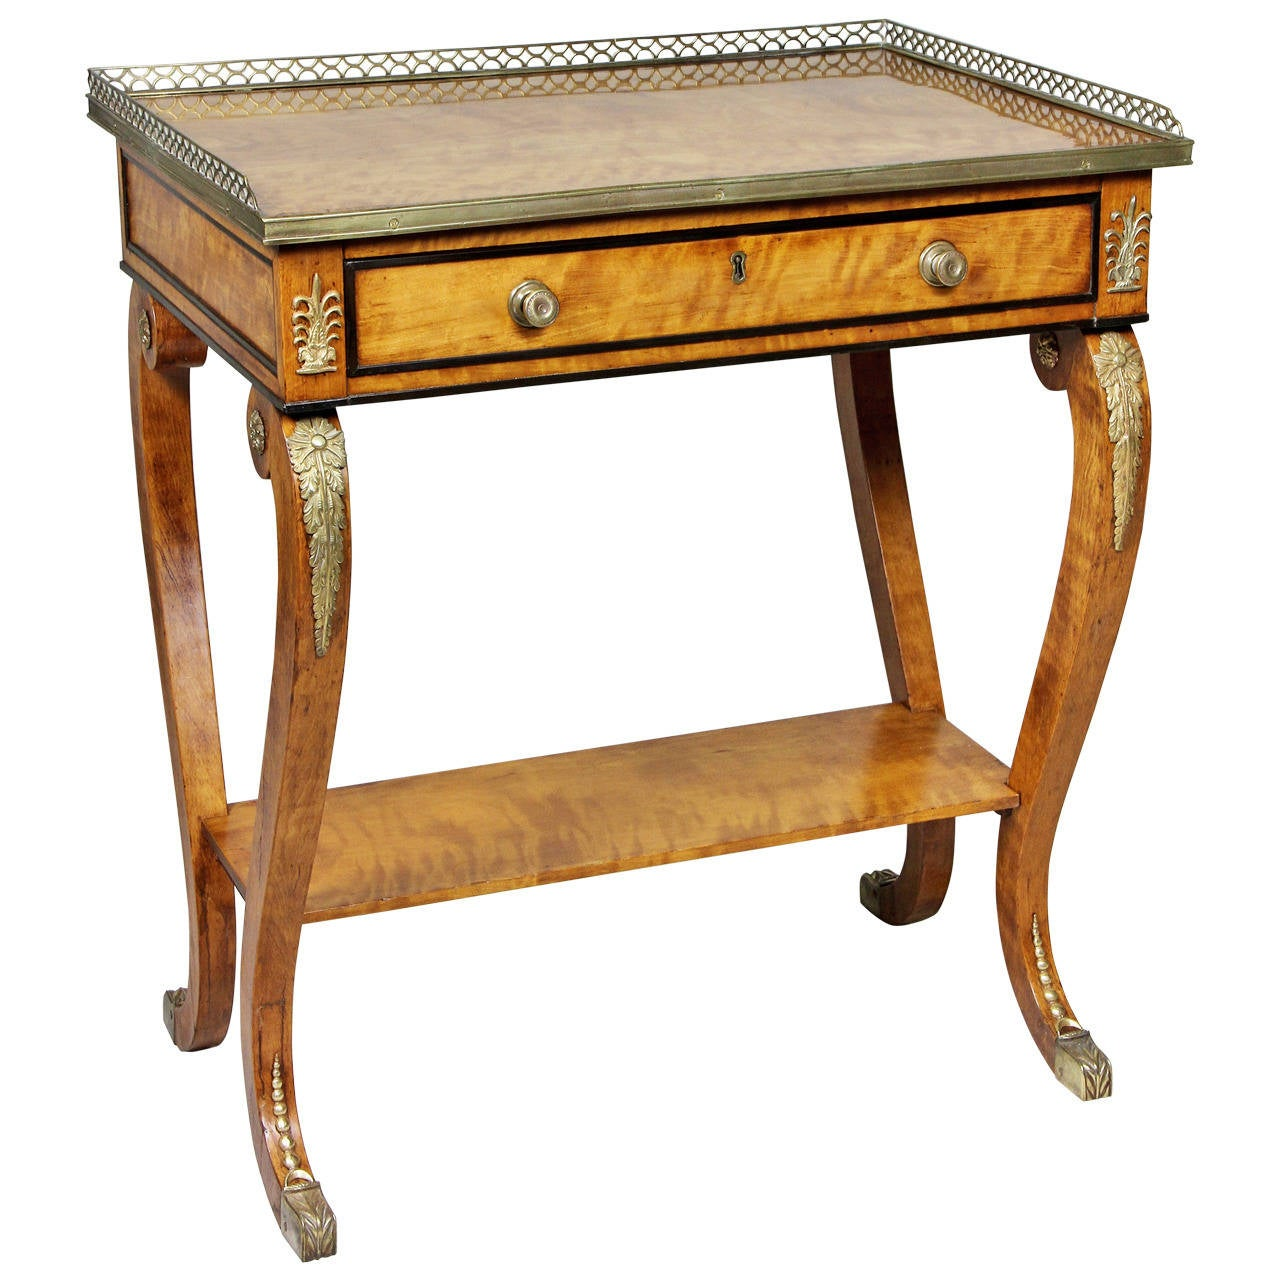 Regency satinwood and bronze mounted small writing table for sale